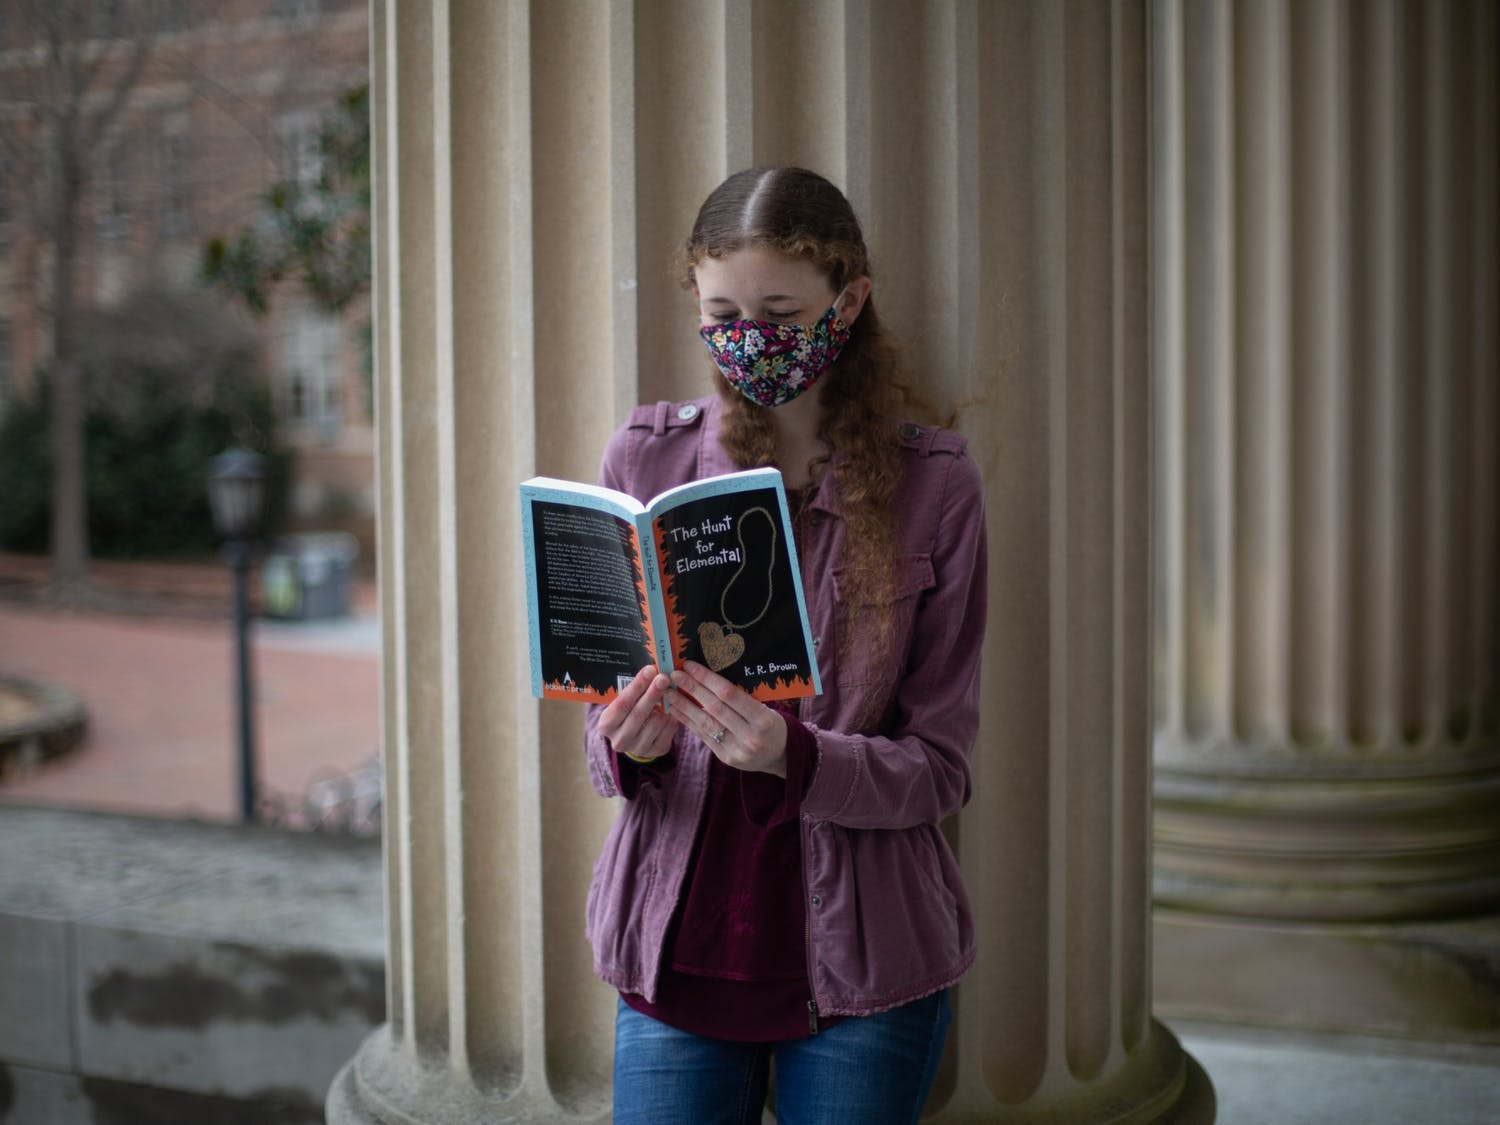 Senior communications major and author Kristen Brown poses for a portrait with her latest book, The Hunt for Elemental, in front of Wilson Library on Saturday, Feb. 27, 2021. Brown has plans for at least nine books in the series but hopes there will be more.